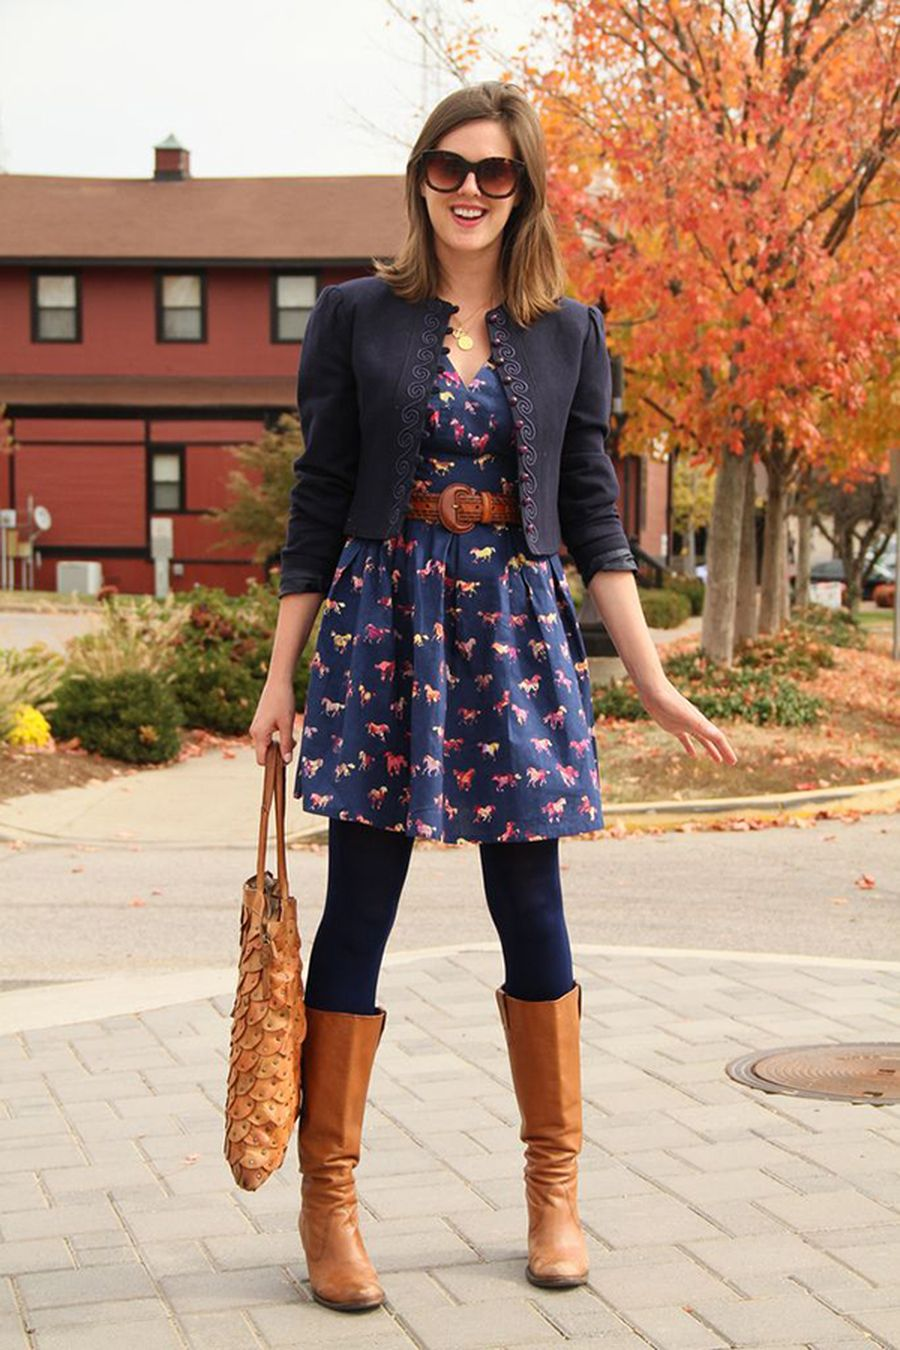 Inspiring skirt and boots combinations for fall and winter outfits 51